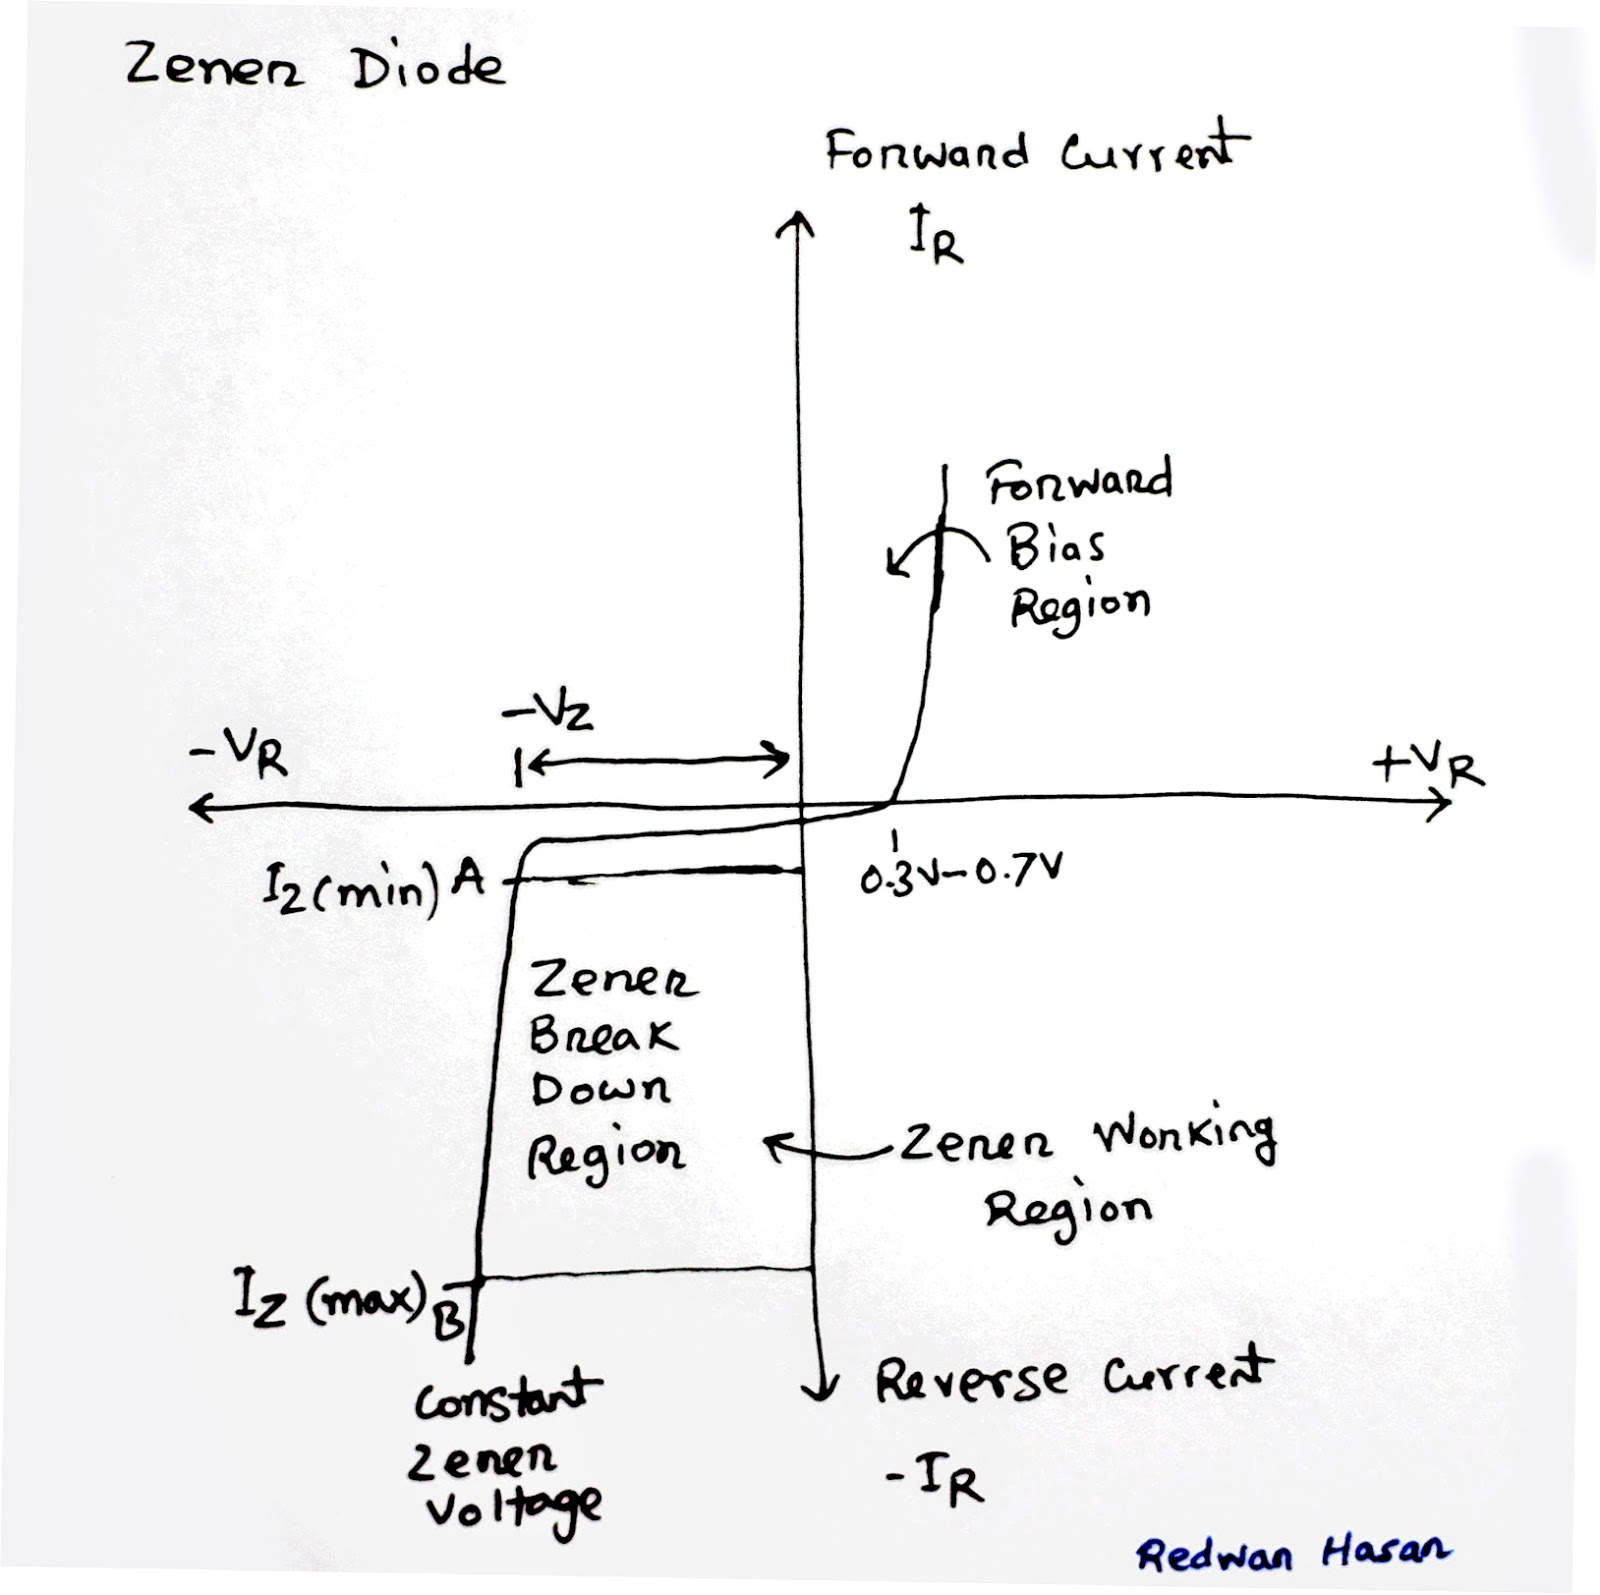 Capacitor Leakage And Design For Low Energy Battery Powered Devices additionally Dreamworks Or Disney Images further Over Load Relay Contactor For Starter as well Voltage Divider Circuits furthermore Ask Experts Voltage Drop Calculations. on dc voltage drop chart